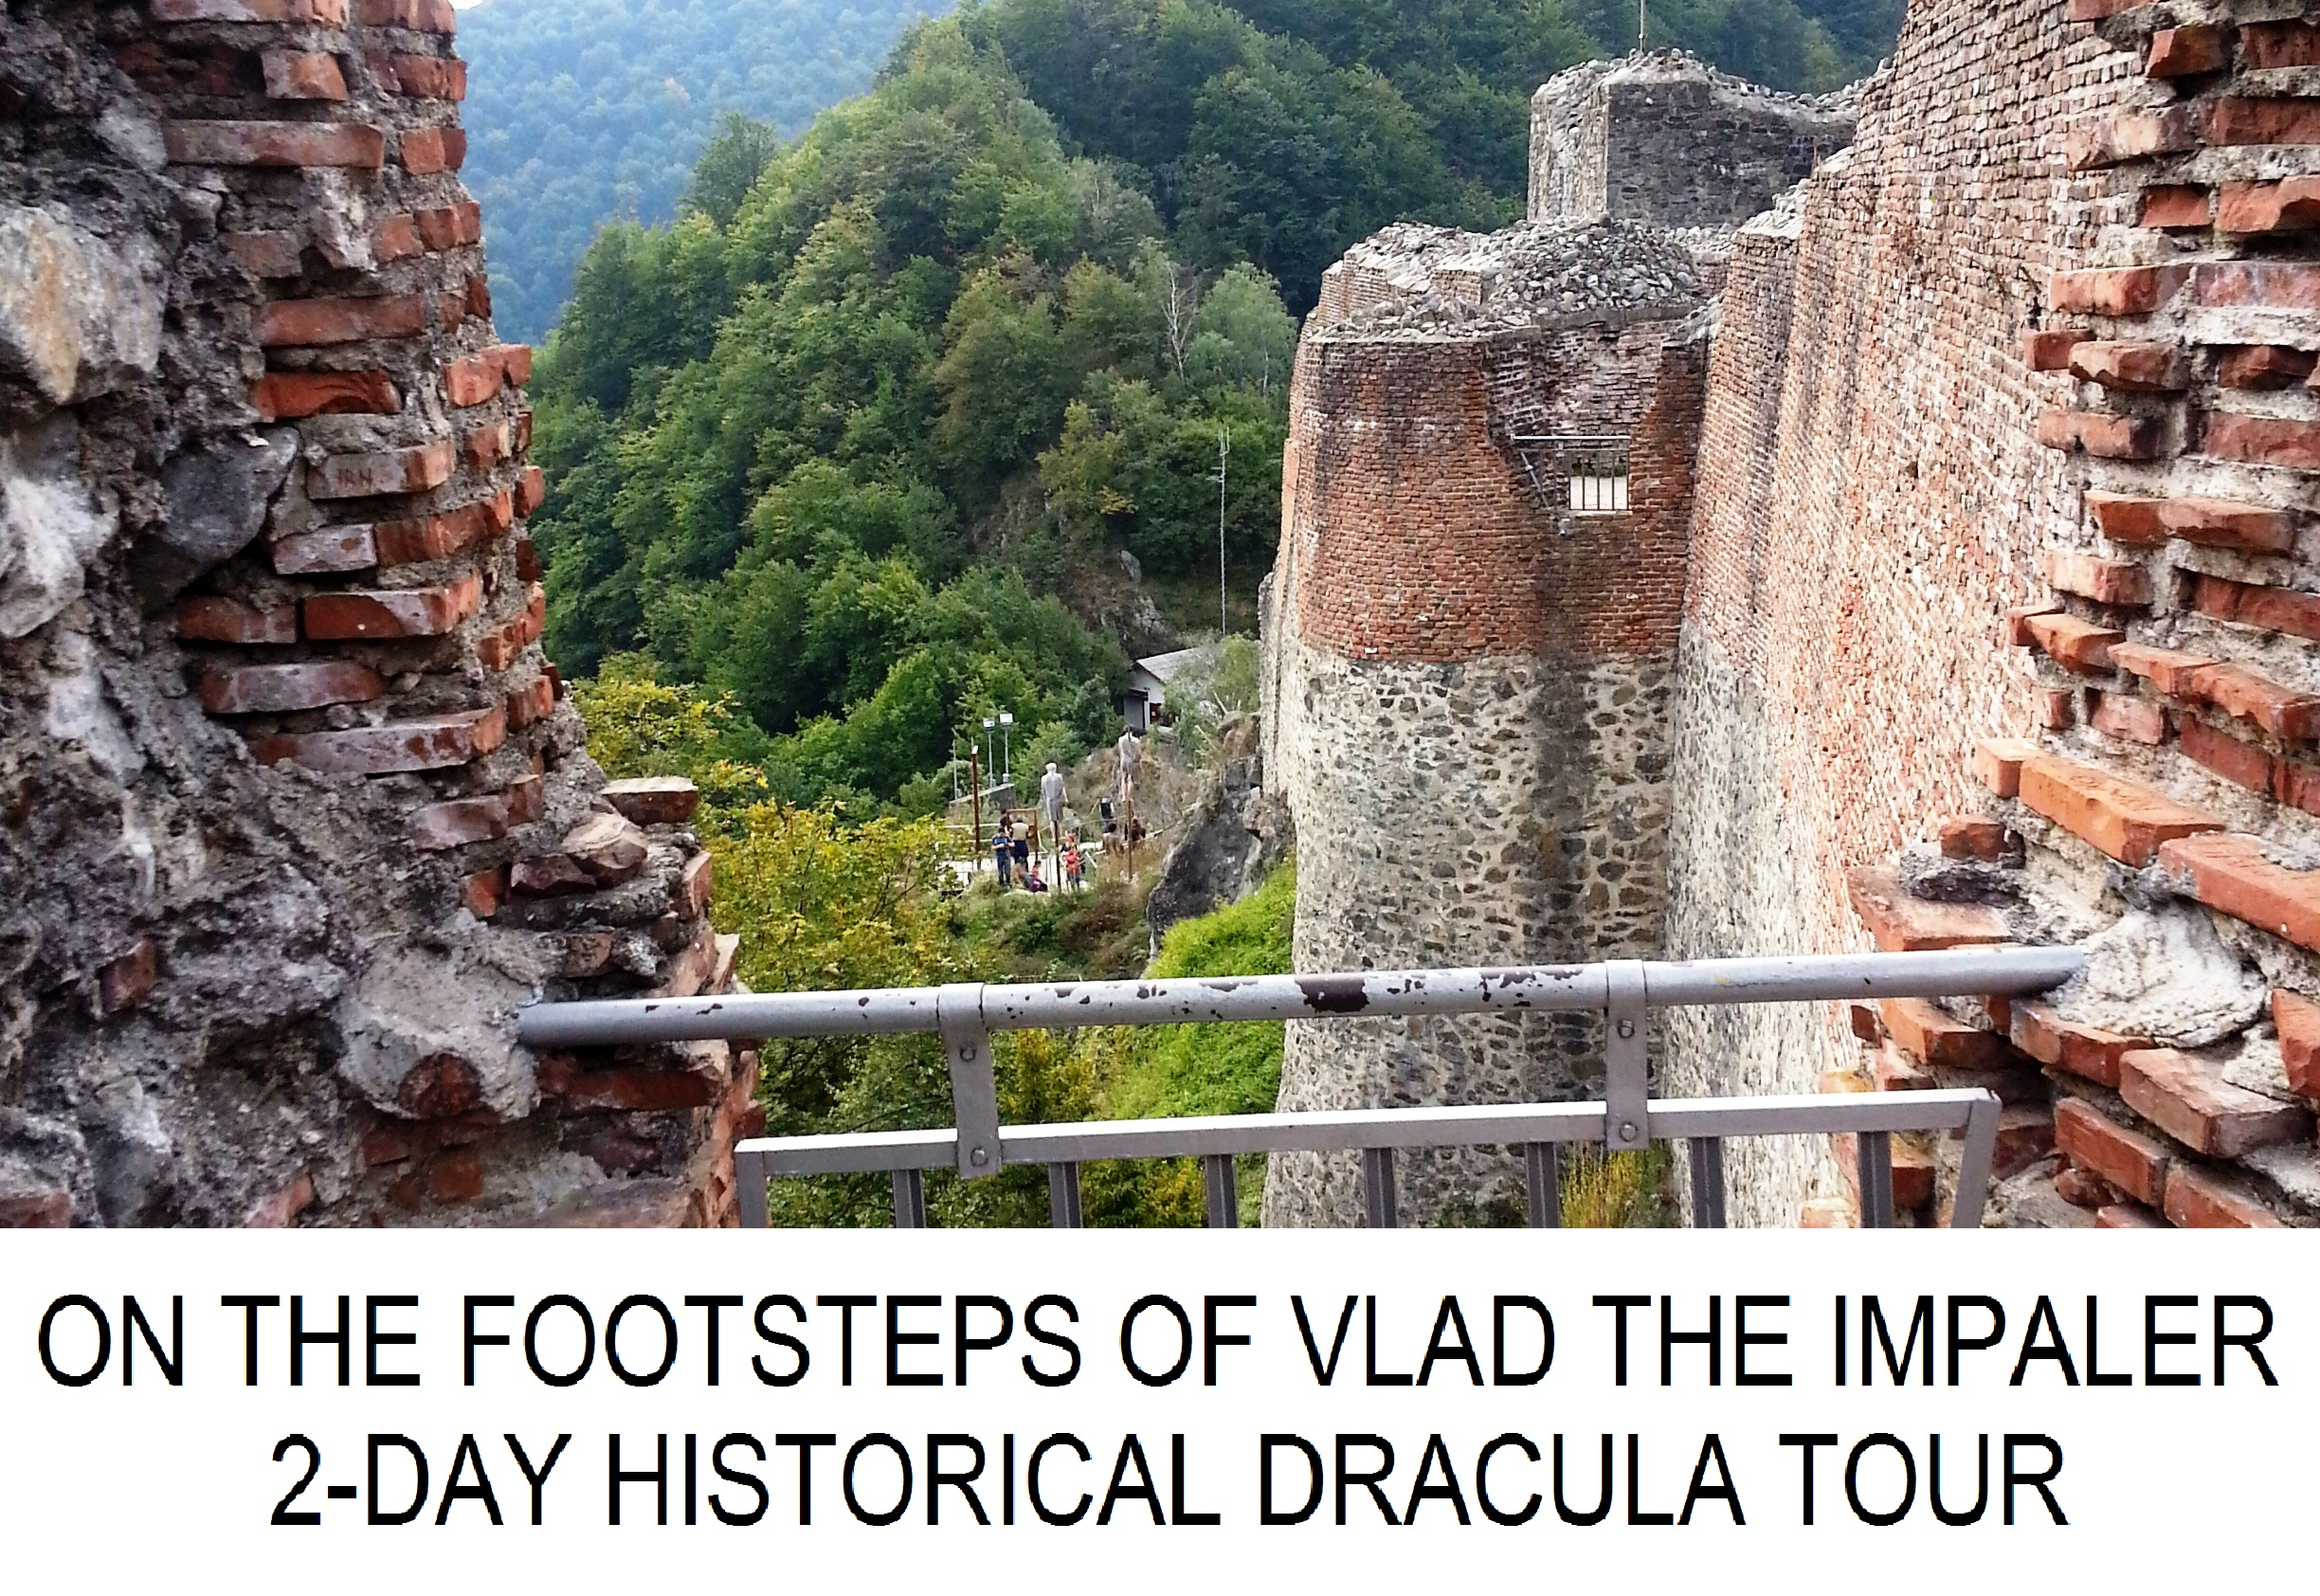 2 Day Tour On The Footsteps Of Vlad The Impaler Historical Dracula Bucharest Uncovered,Vintage French Decorating Ideas